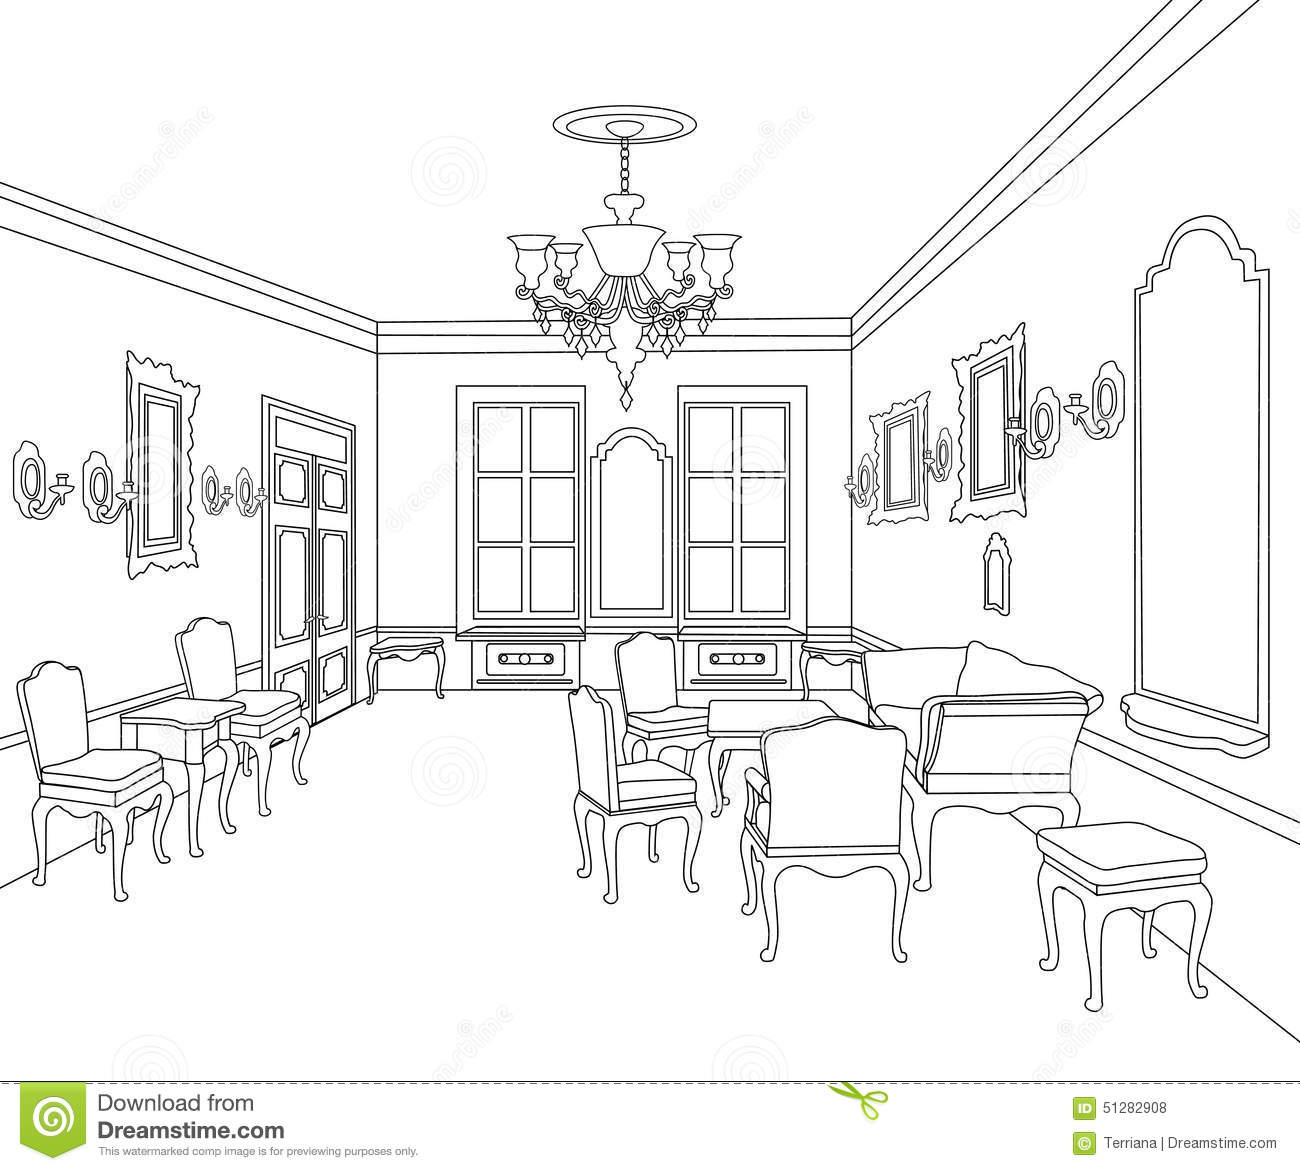 Room blueprint maker furniture oom blueprint rchitectural malvernweather Choice Image